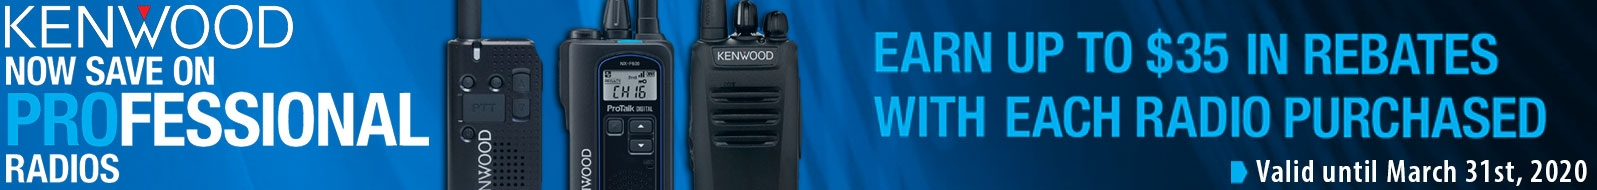 Earn a $20-$35 rebate with a minimum purchase of one select Kenwood radio!